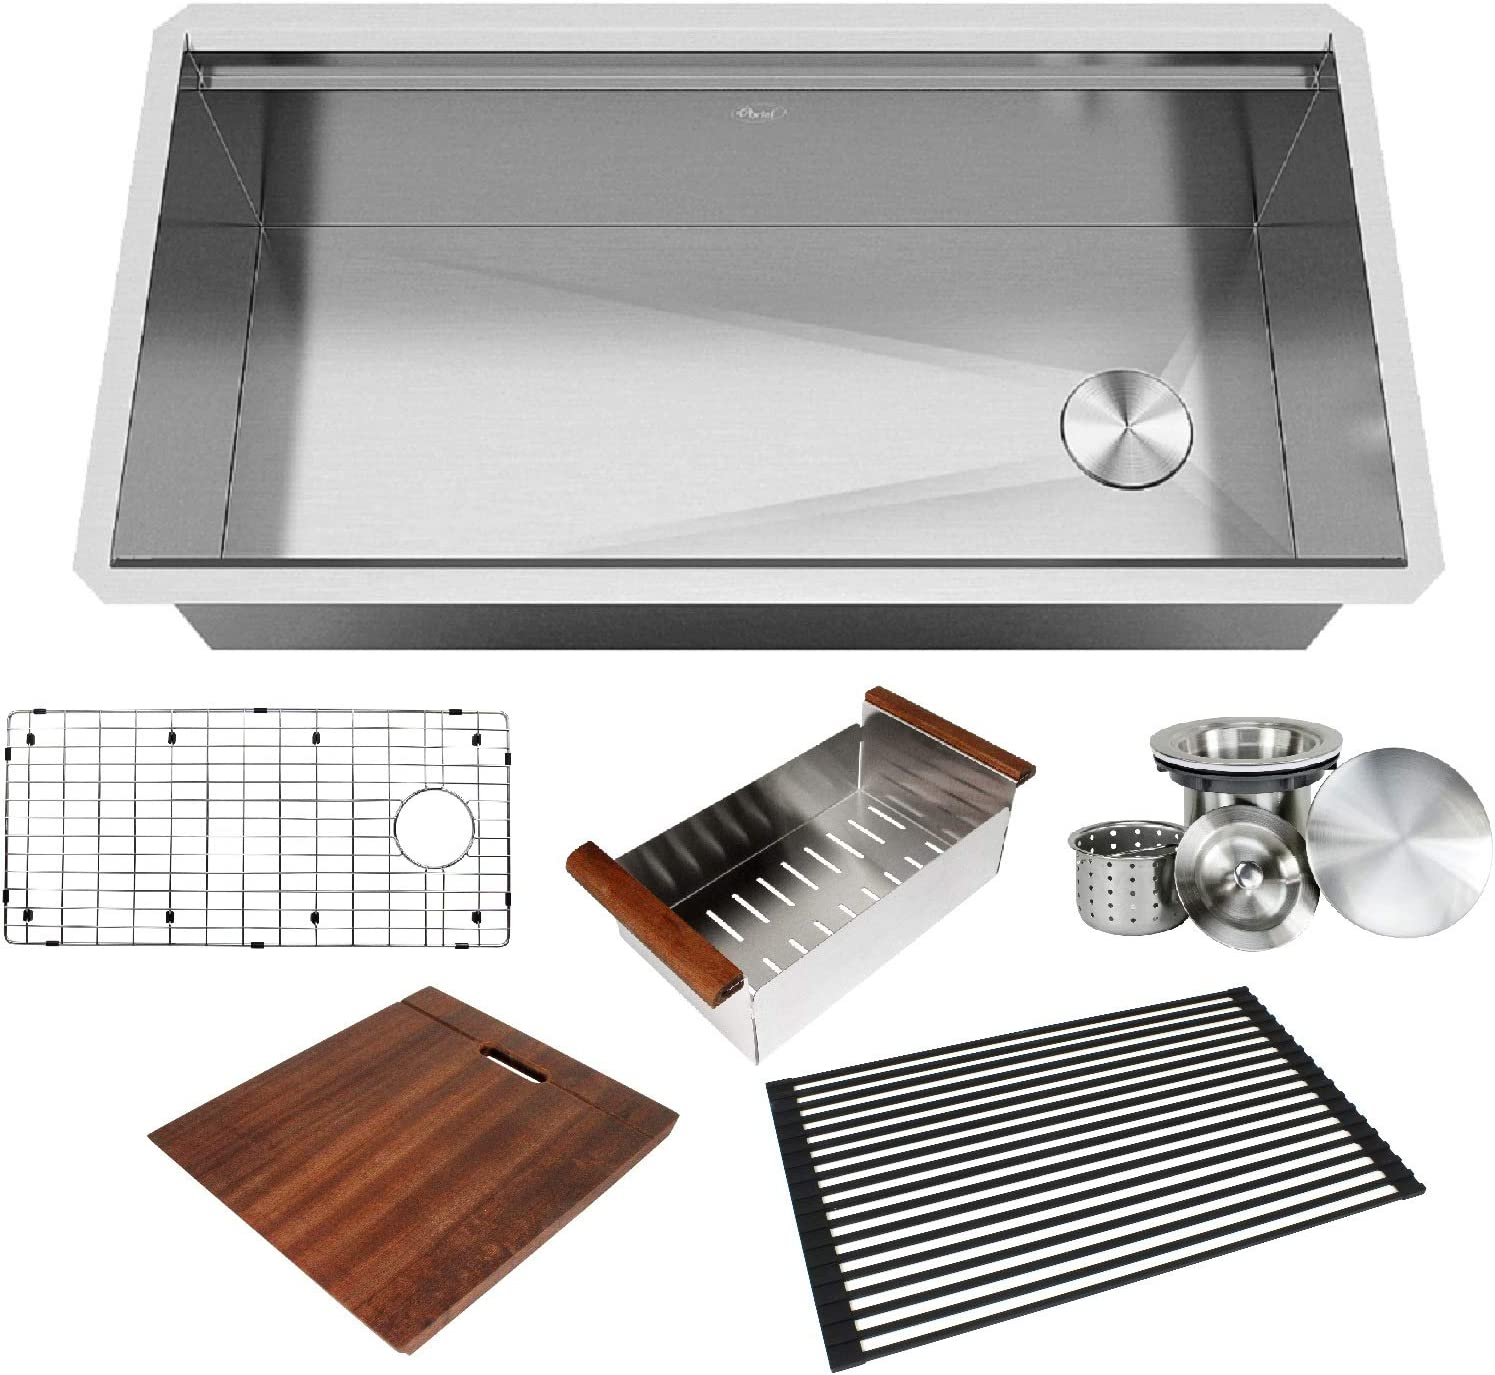 KINGSMAN ALL-IN-ONE Workstation 36 in. 16-Gauge Undermount Single Bowl Stainless Steel Kitchen Sink w/Build-in Ledge and Accessories (Brushed Stainless Steel)